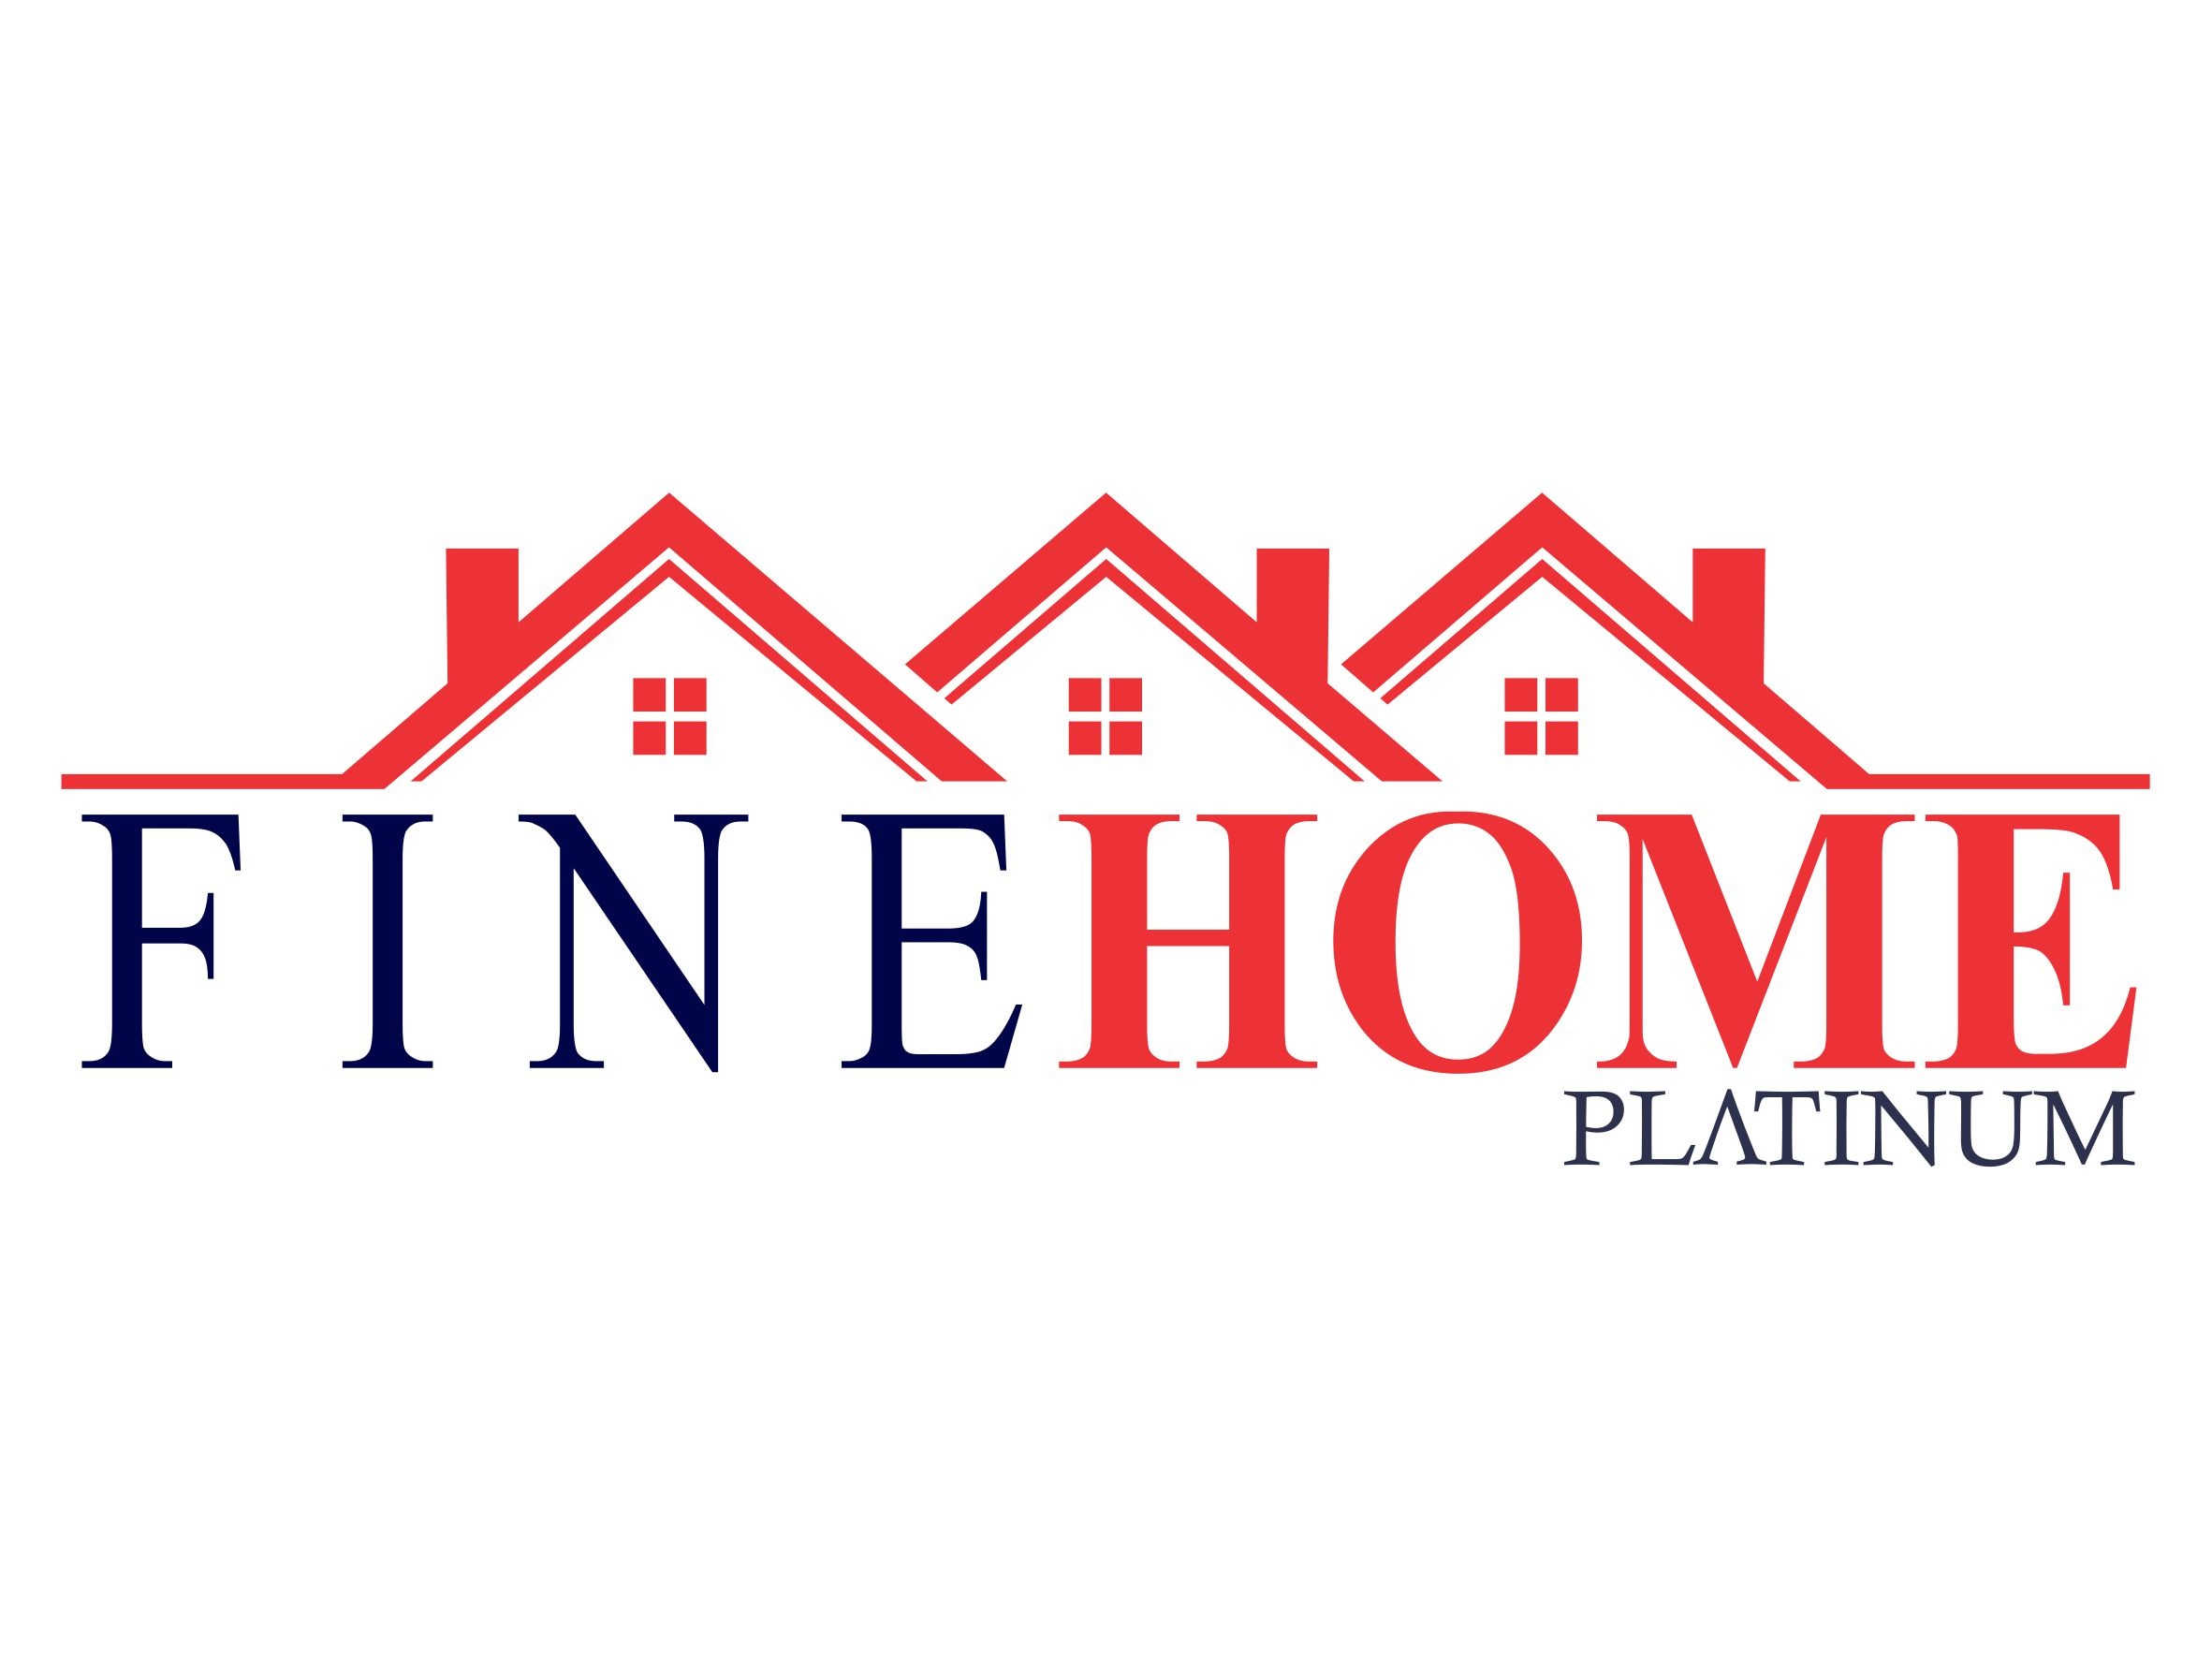 Fine Home Platinum